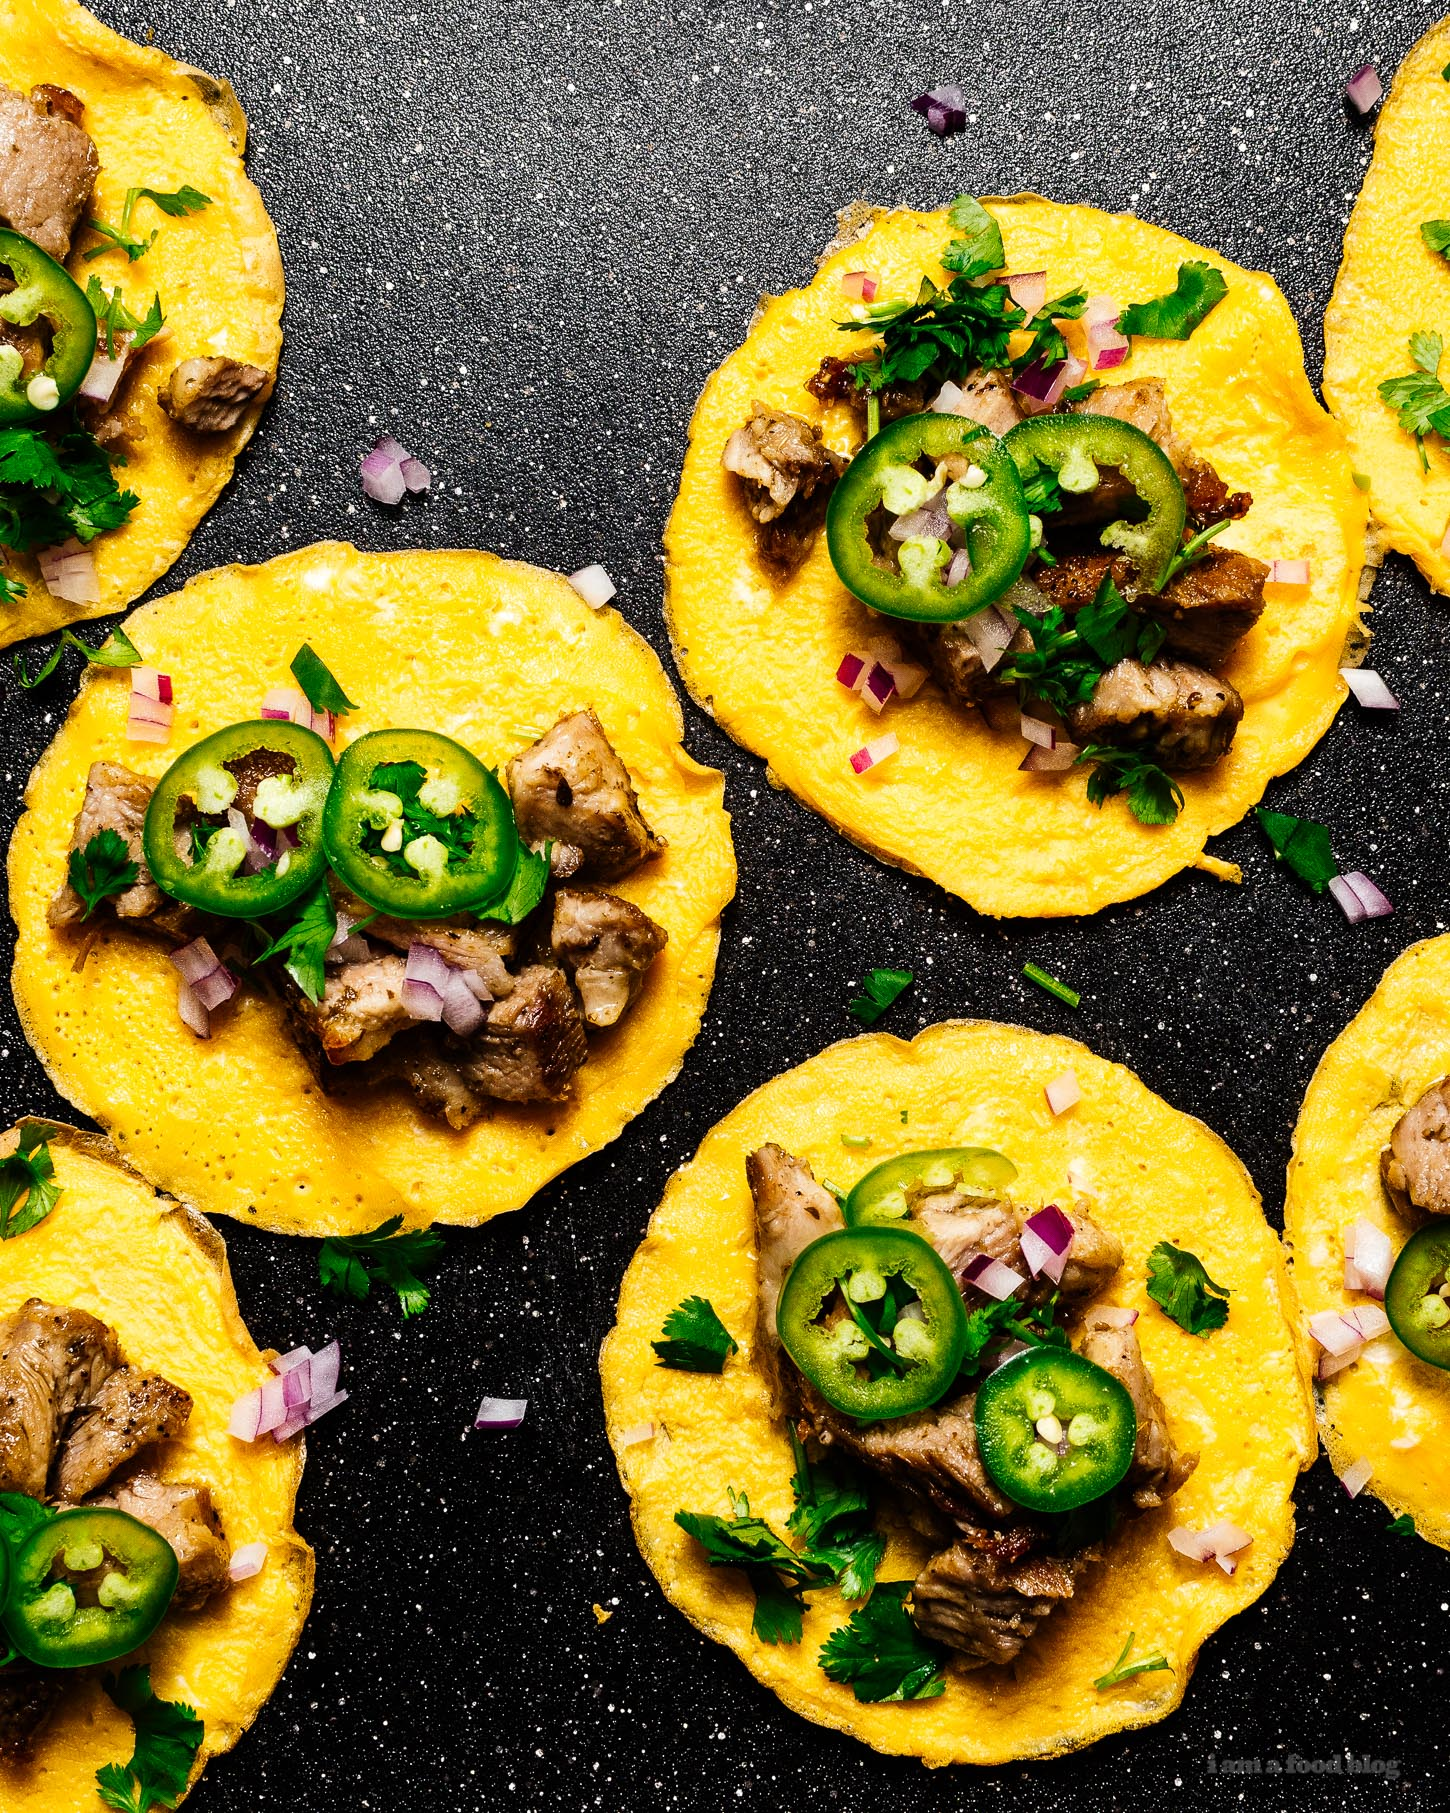 """Keto Instant Pot carnitas inspired street tacos: Keto friendly low carb street style carnitas inspired tacos with egg """"tortillas."""" They look just like the real thing and the taste amazing! Crispy pork flavored with oregano and cumin made quick and easy in the Instant Pot. #keto #ketorecipes #instantpot #eggs #macros #porkrecipes #ketoporkrecipes #lowcarb #recipes"""